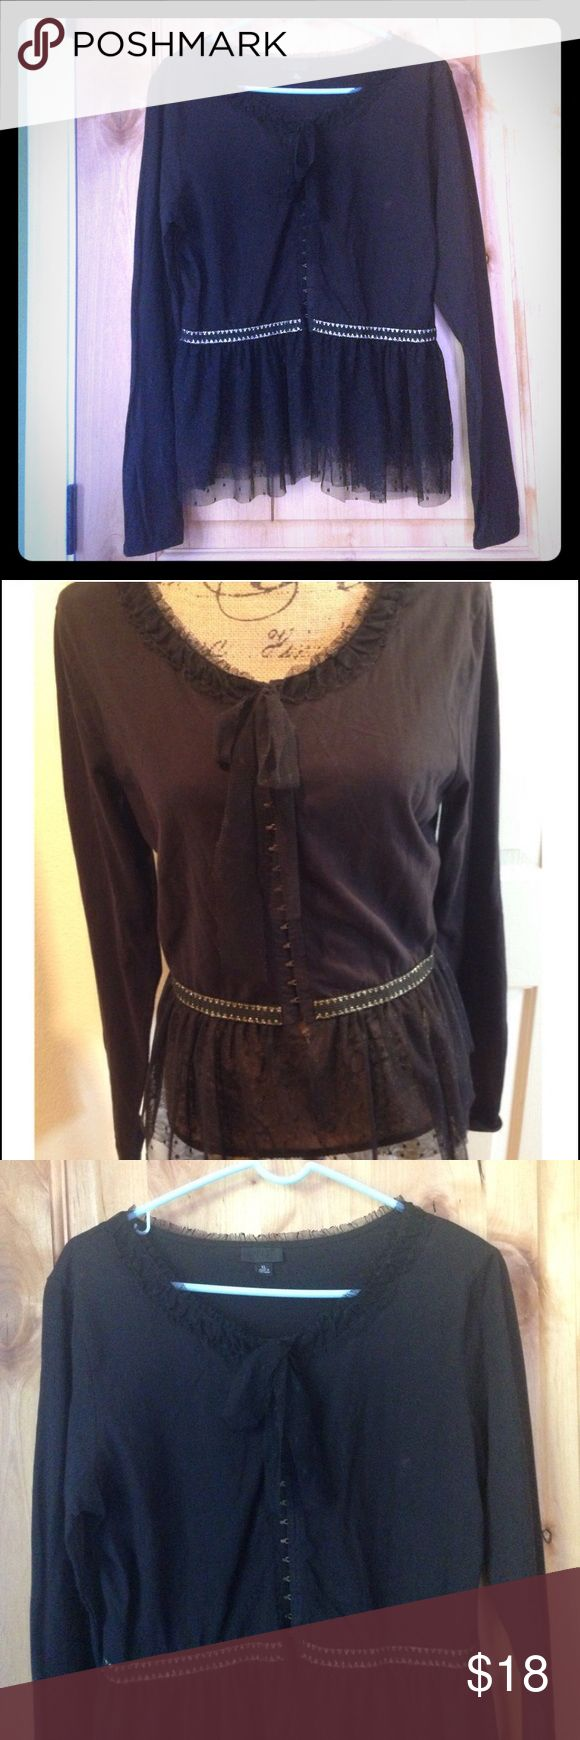 ANNA SUI for Target Black Tulle Gold Trim EUC XL ANNA SUI for Target Black Tulle Gold Trim EUC XL *Tiny Stain that appears to be ink on Front Left Bust. Priced Accordingly. *More details on top added shortly. Anna Sui for Target Tops Blouses